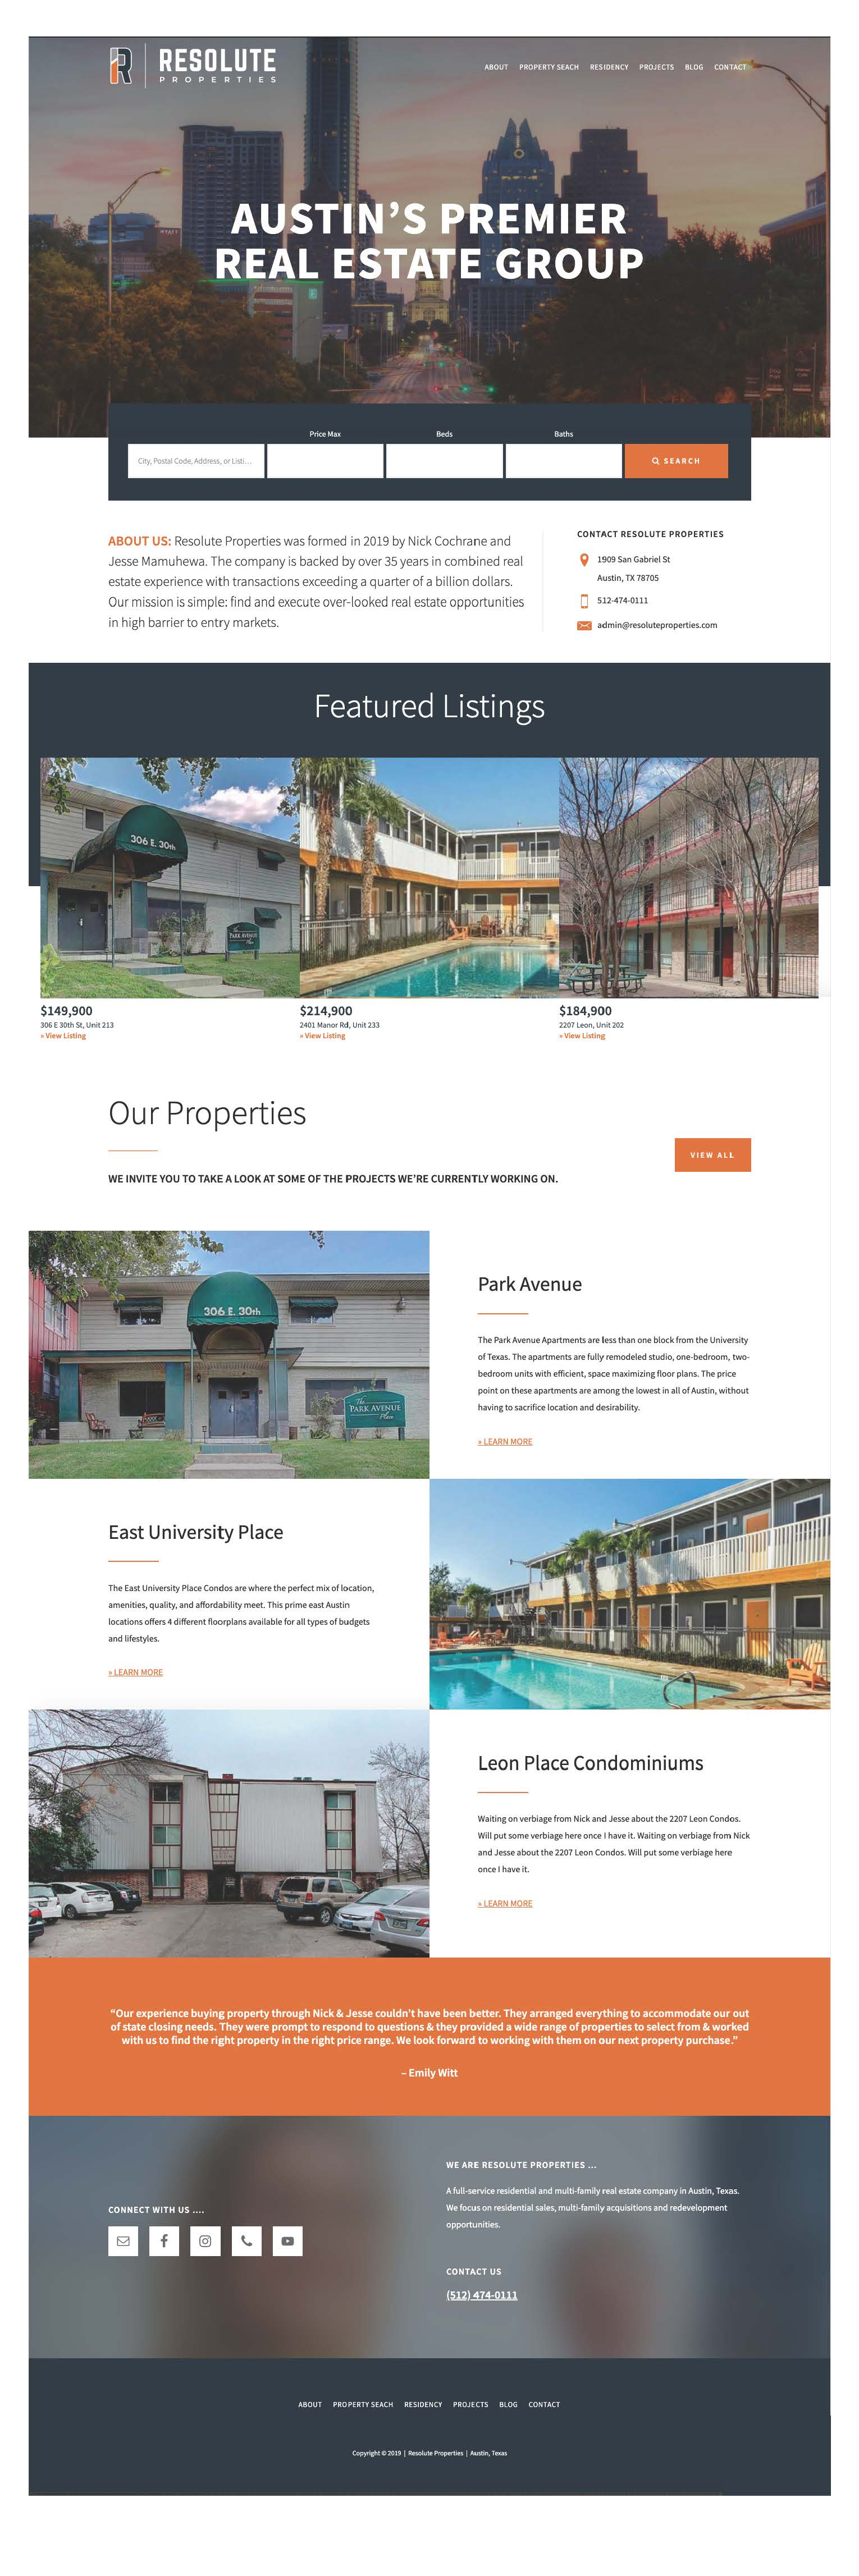 Resolute Properties Austin Website Design